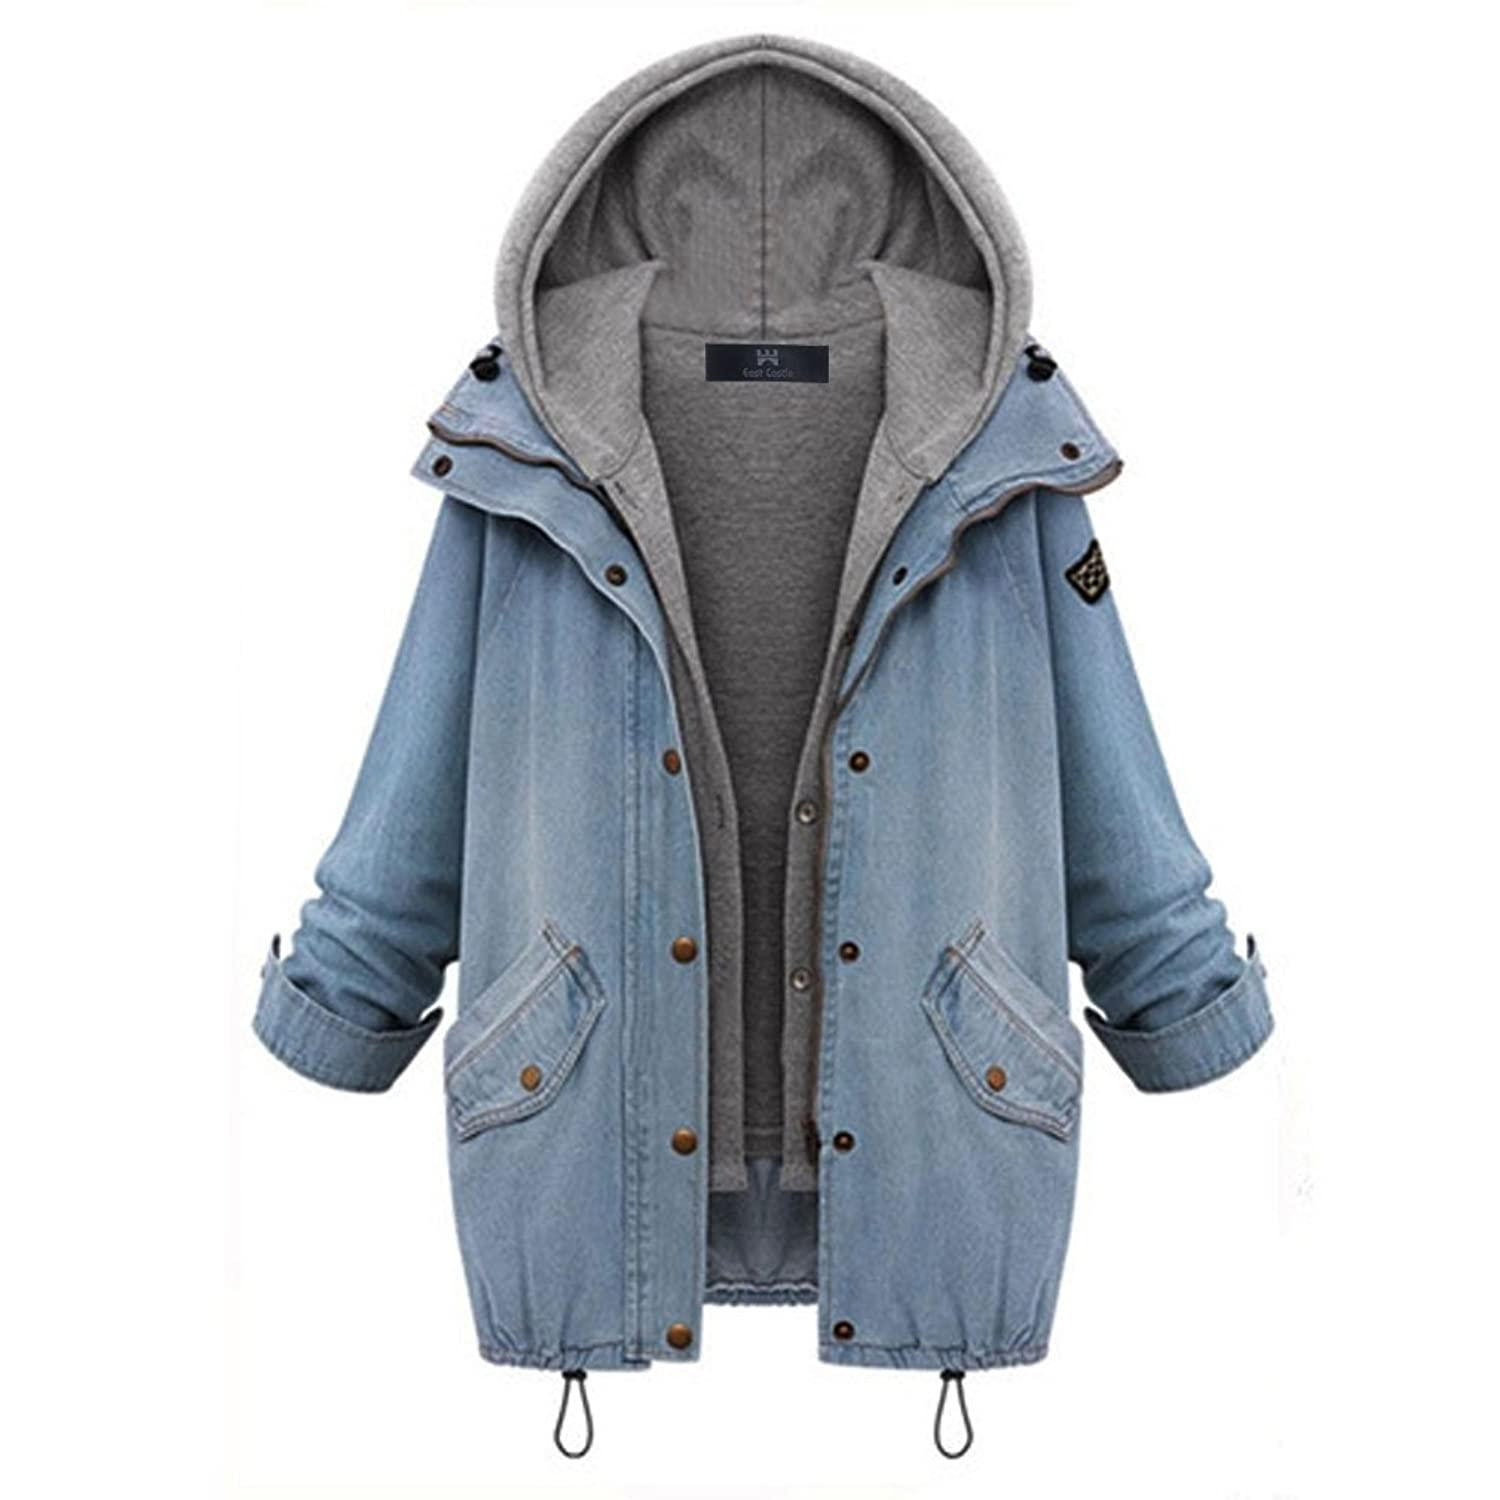 East Castle Women&39s Zip Up Blue Denim Coat Jacket with Hoodie Vest